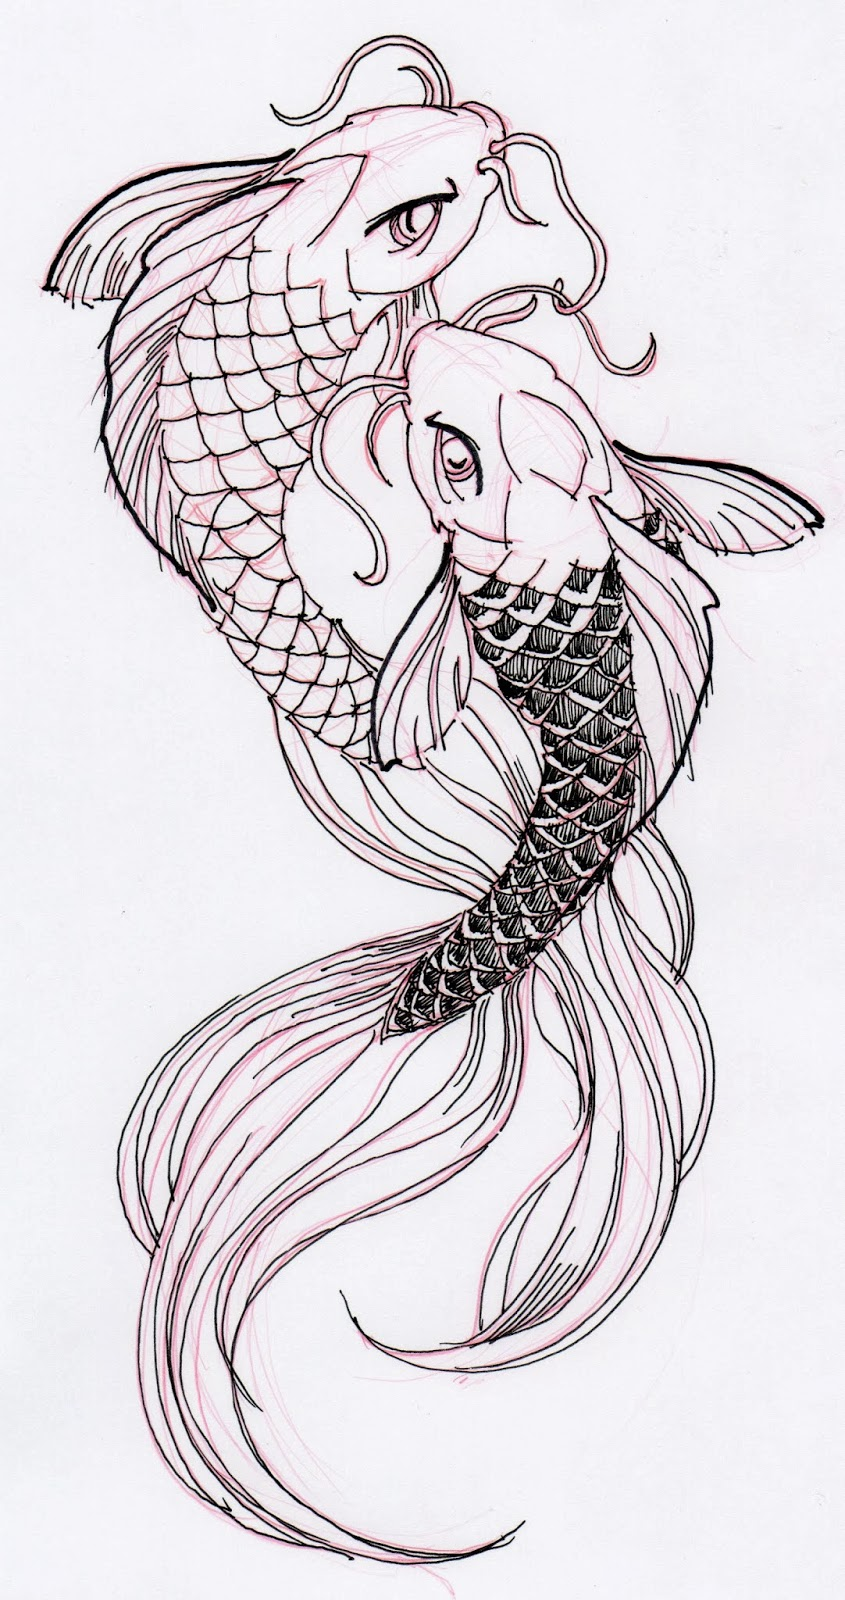 Koi fish drawing outline - photo#9